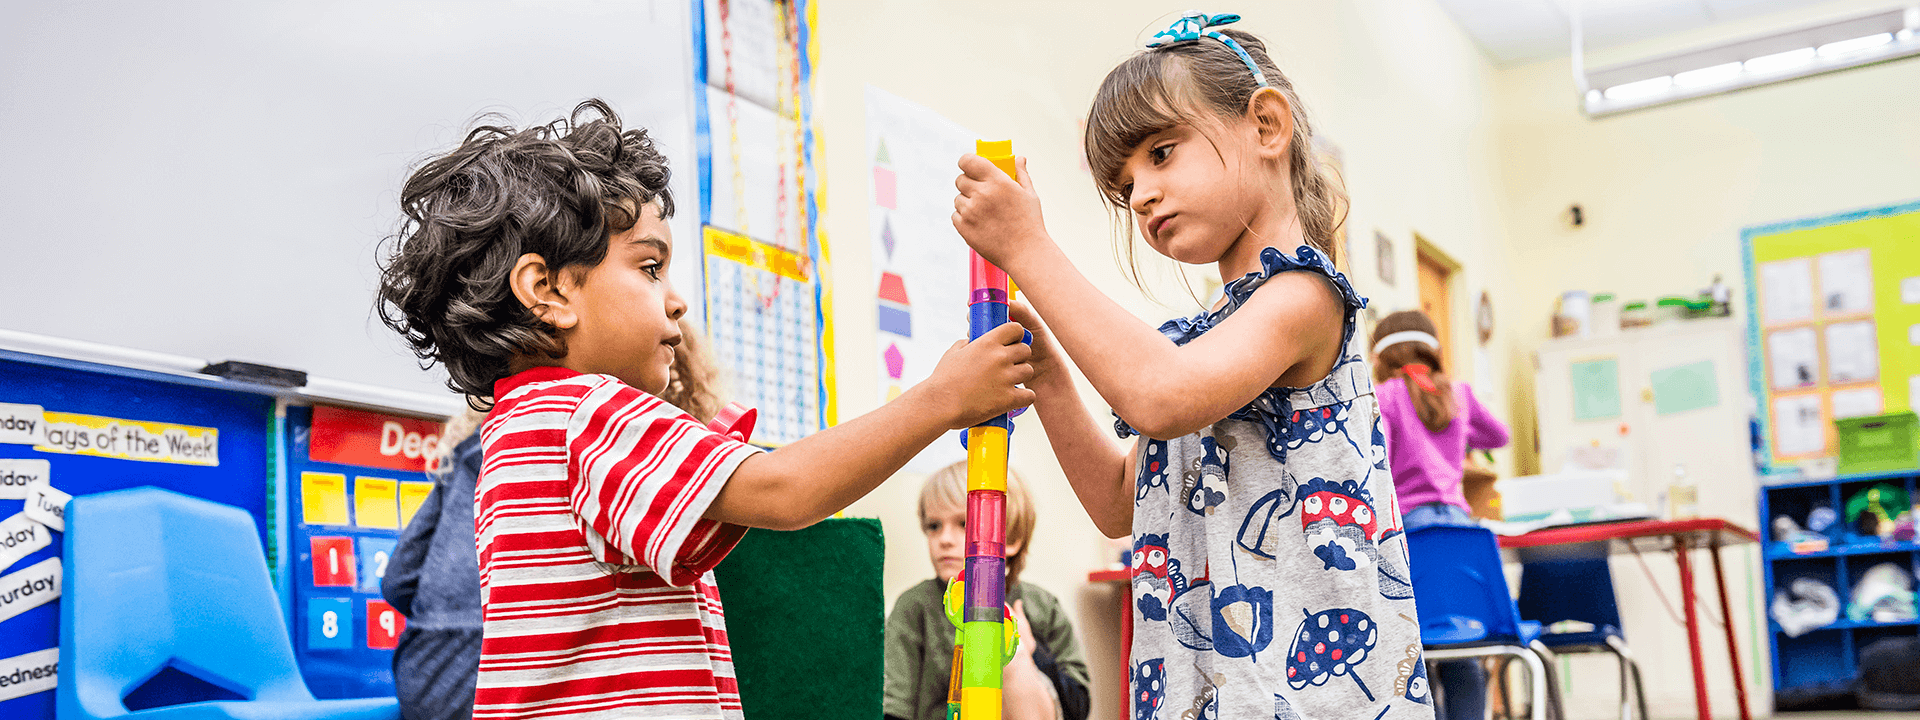 Two preschoolers build a tower together with small blocks.